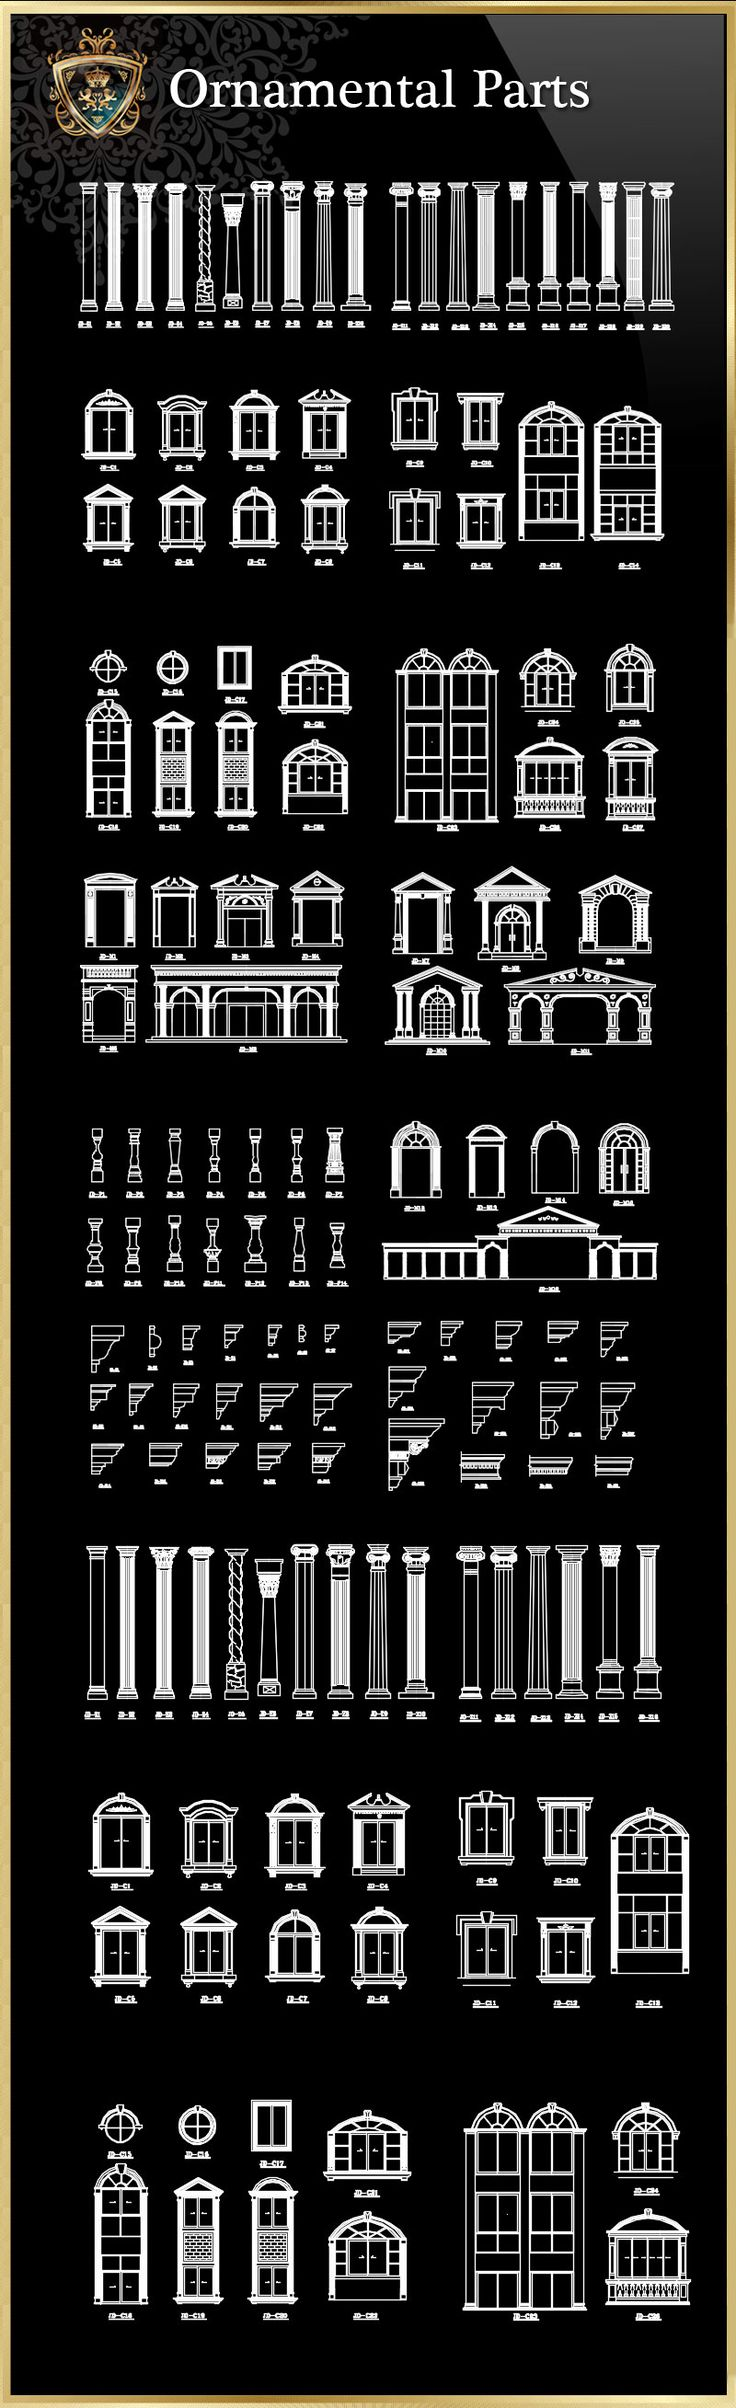 ★【Ornamental Parts of Buildings 7】Download Luxury Architectural Design CAD Drawings--Over 20000+ High quality CAD Blocks and Drawings Download!